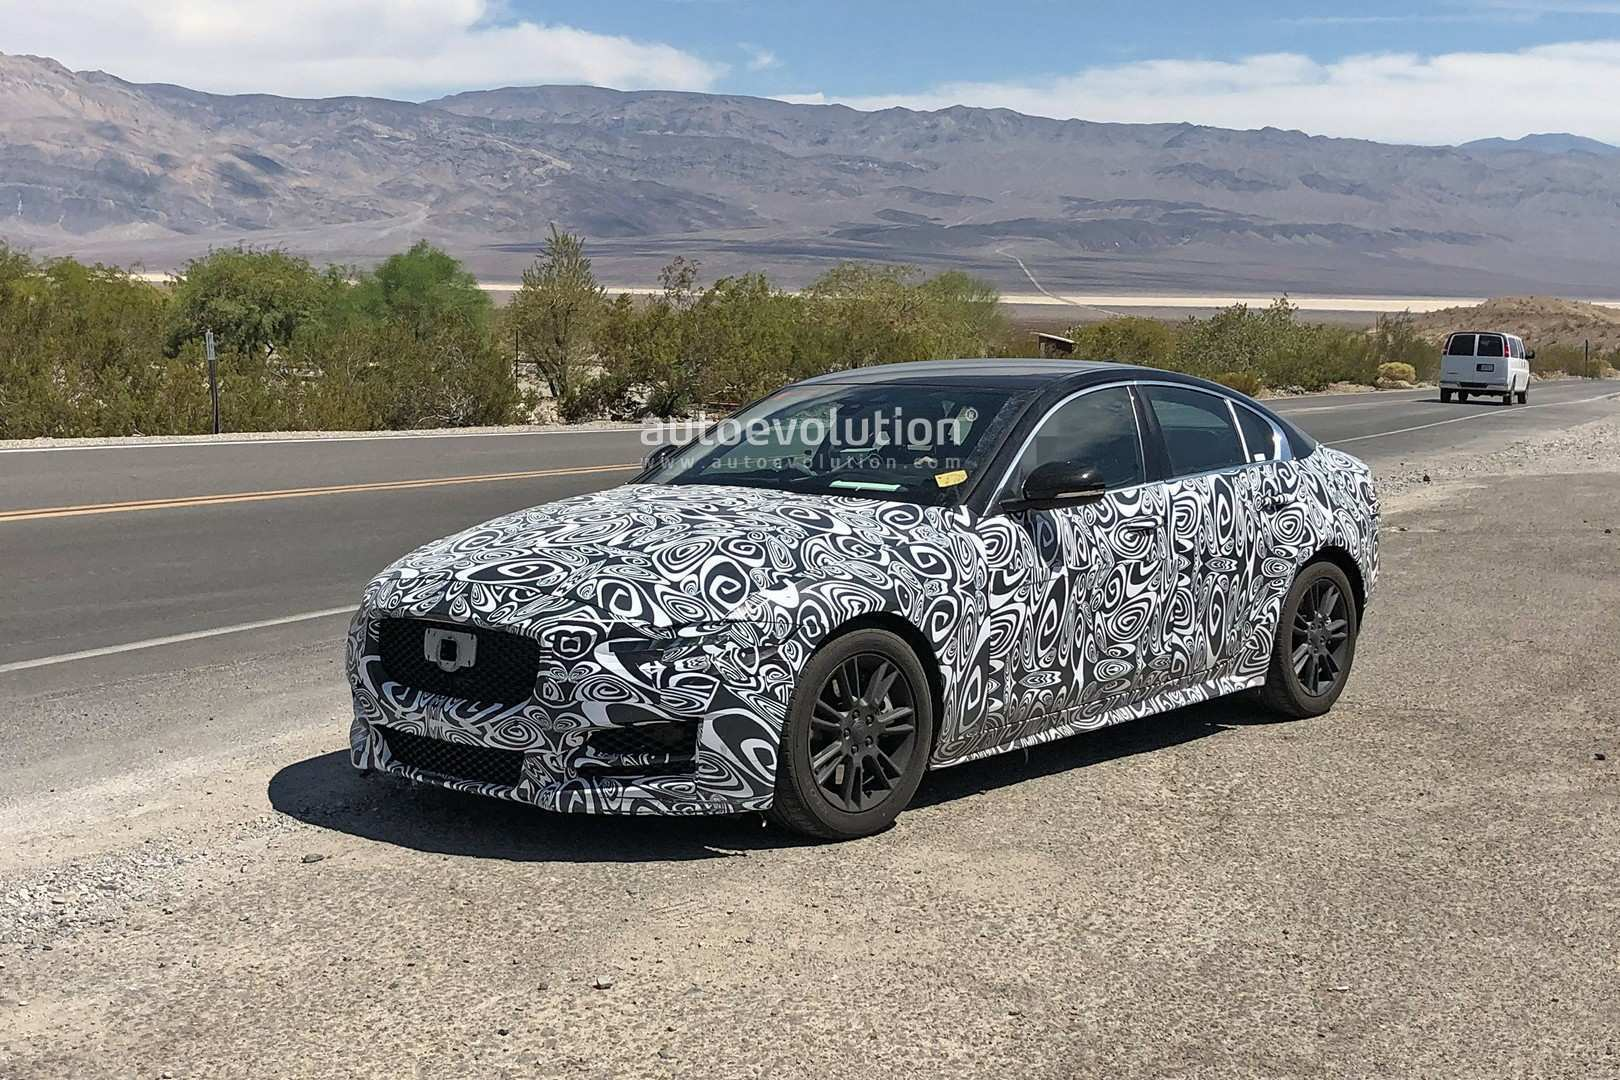 58 All New Jaguar Xf Facelift 2020 Performance and New Engine by Jaguar Xf Facelift 2020